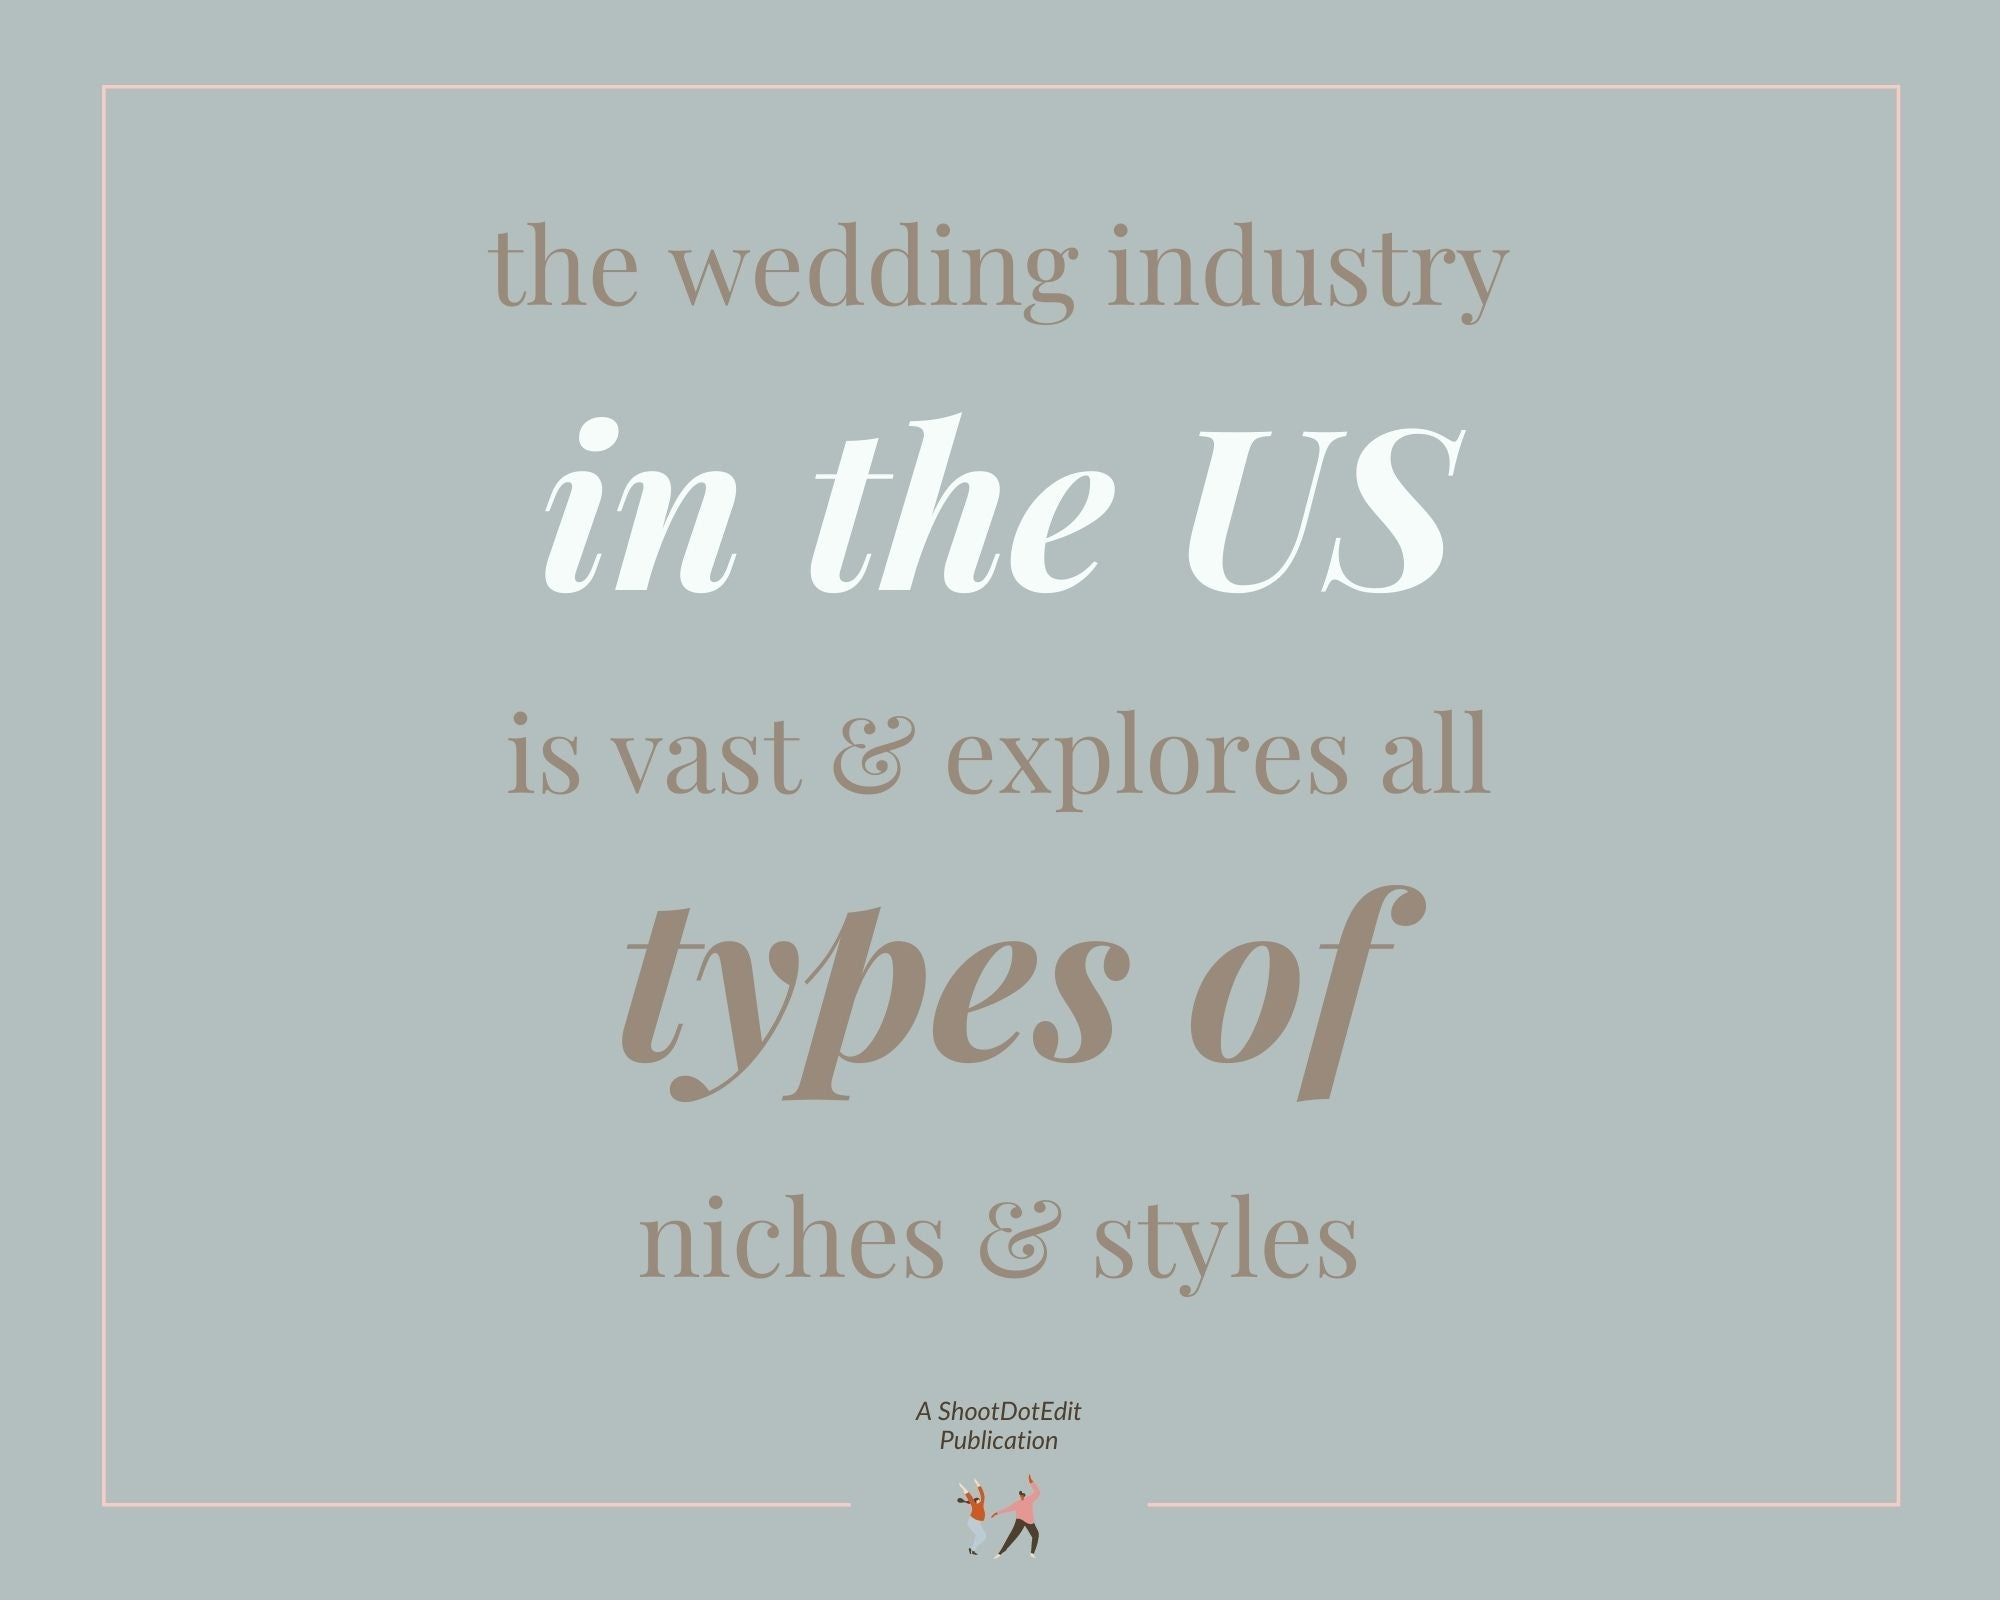 Infographic stating the wedding industry in the US is vast & explores all types of niches & styles